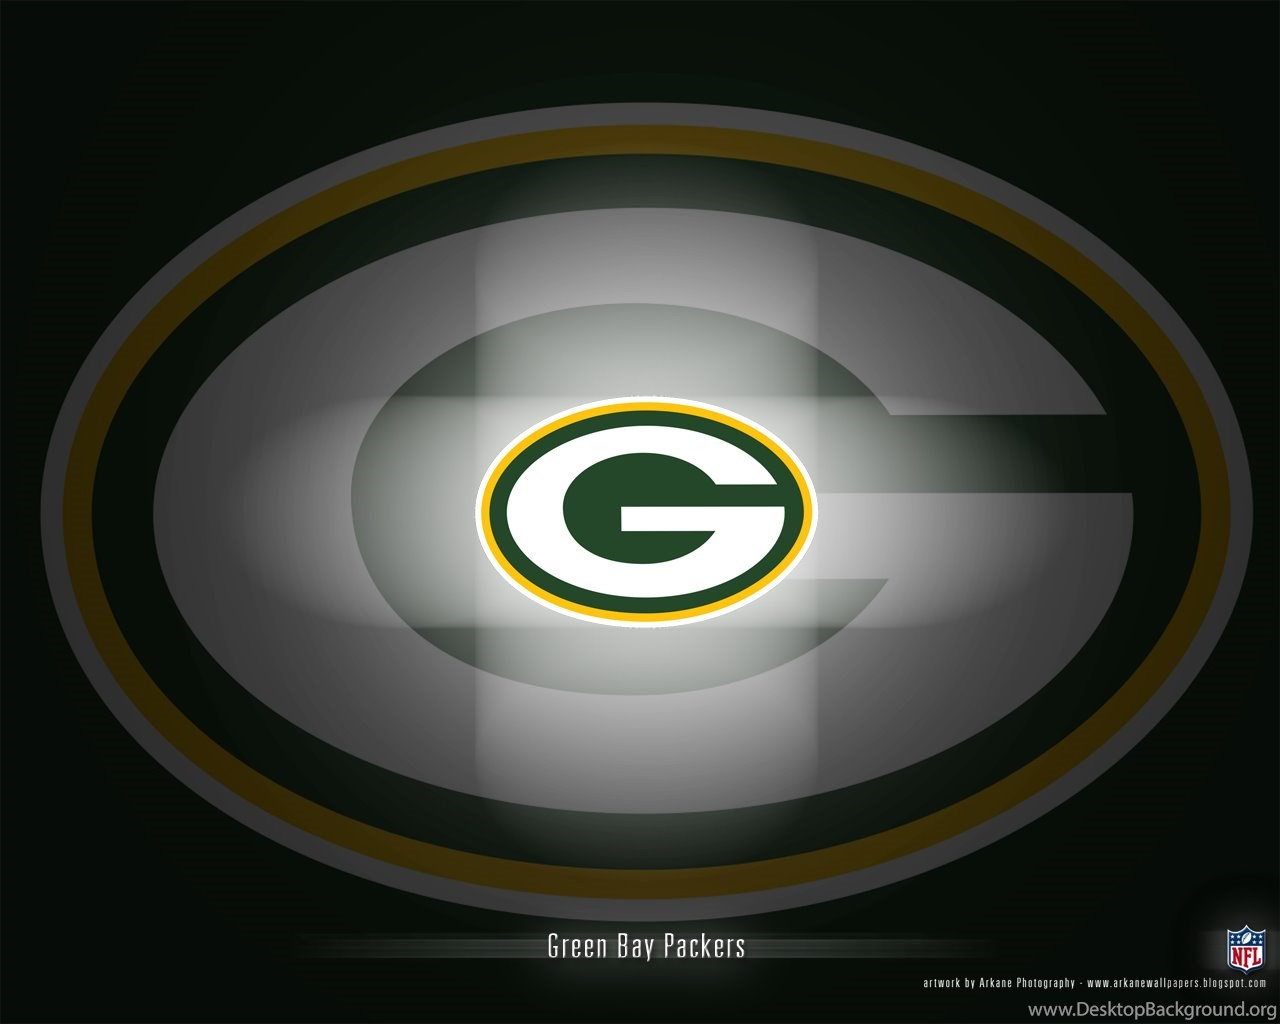 Green Bay Packers Iphone X Wallpaper Green Bay Packers Wallpapers G Logo With Wings Download